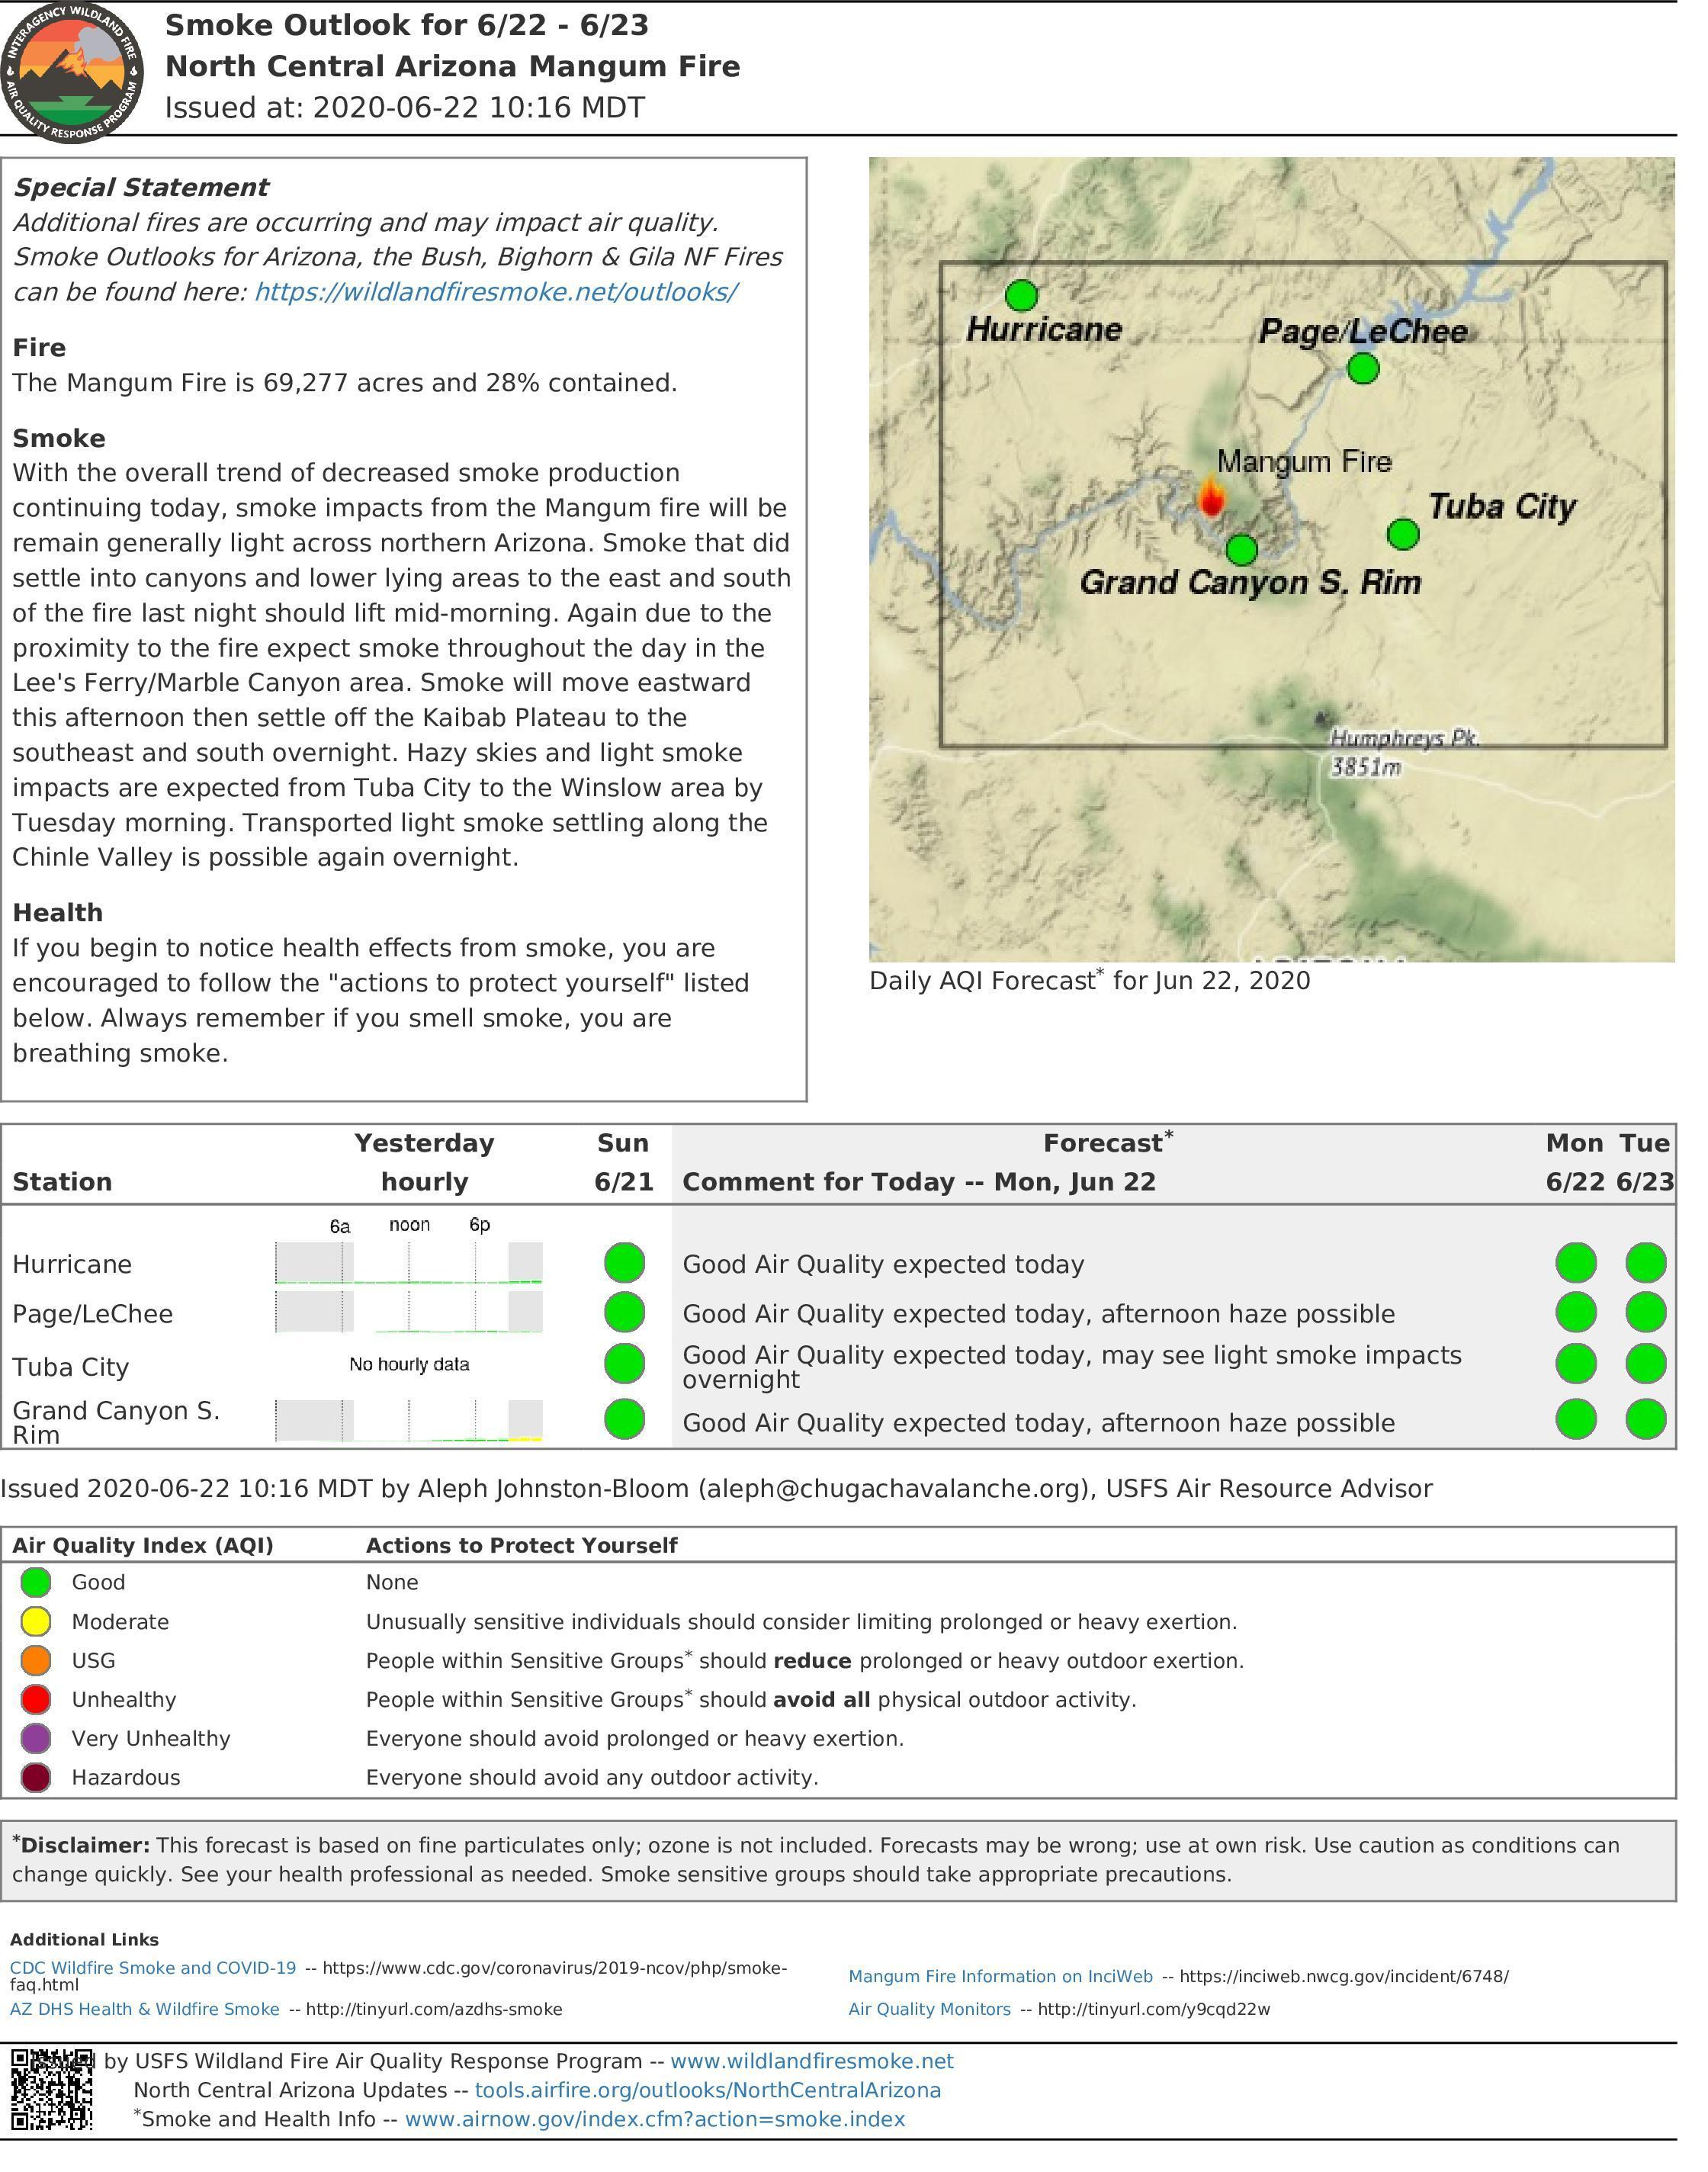 Smoke Outlook for Mangum Fire 6.22.20